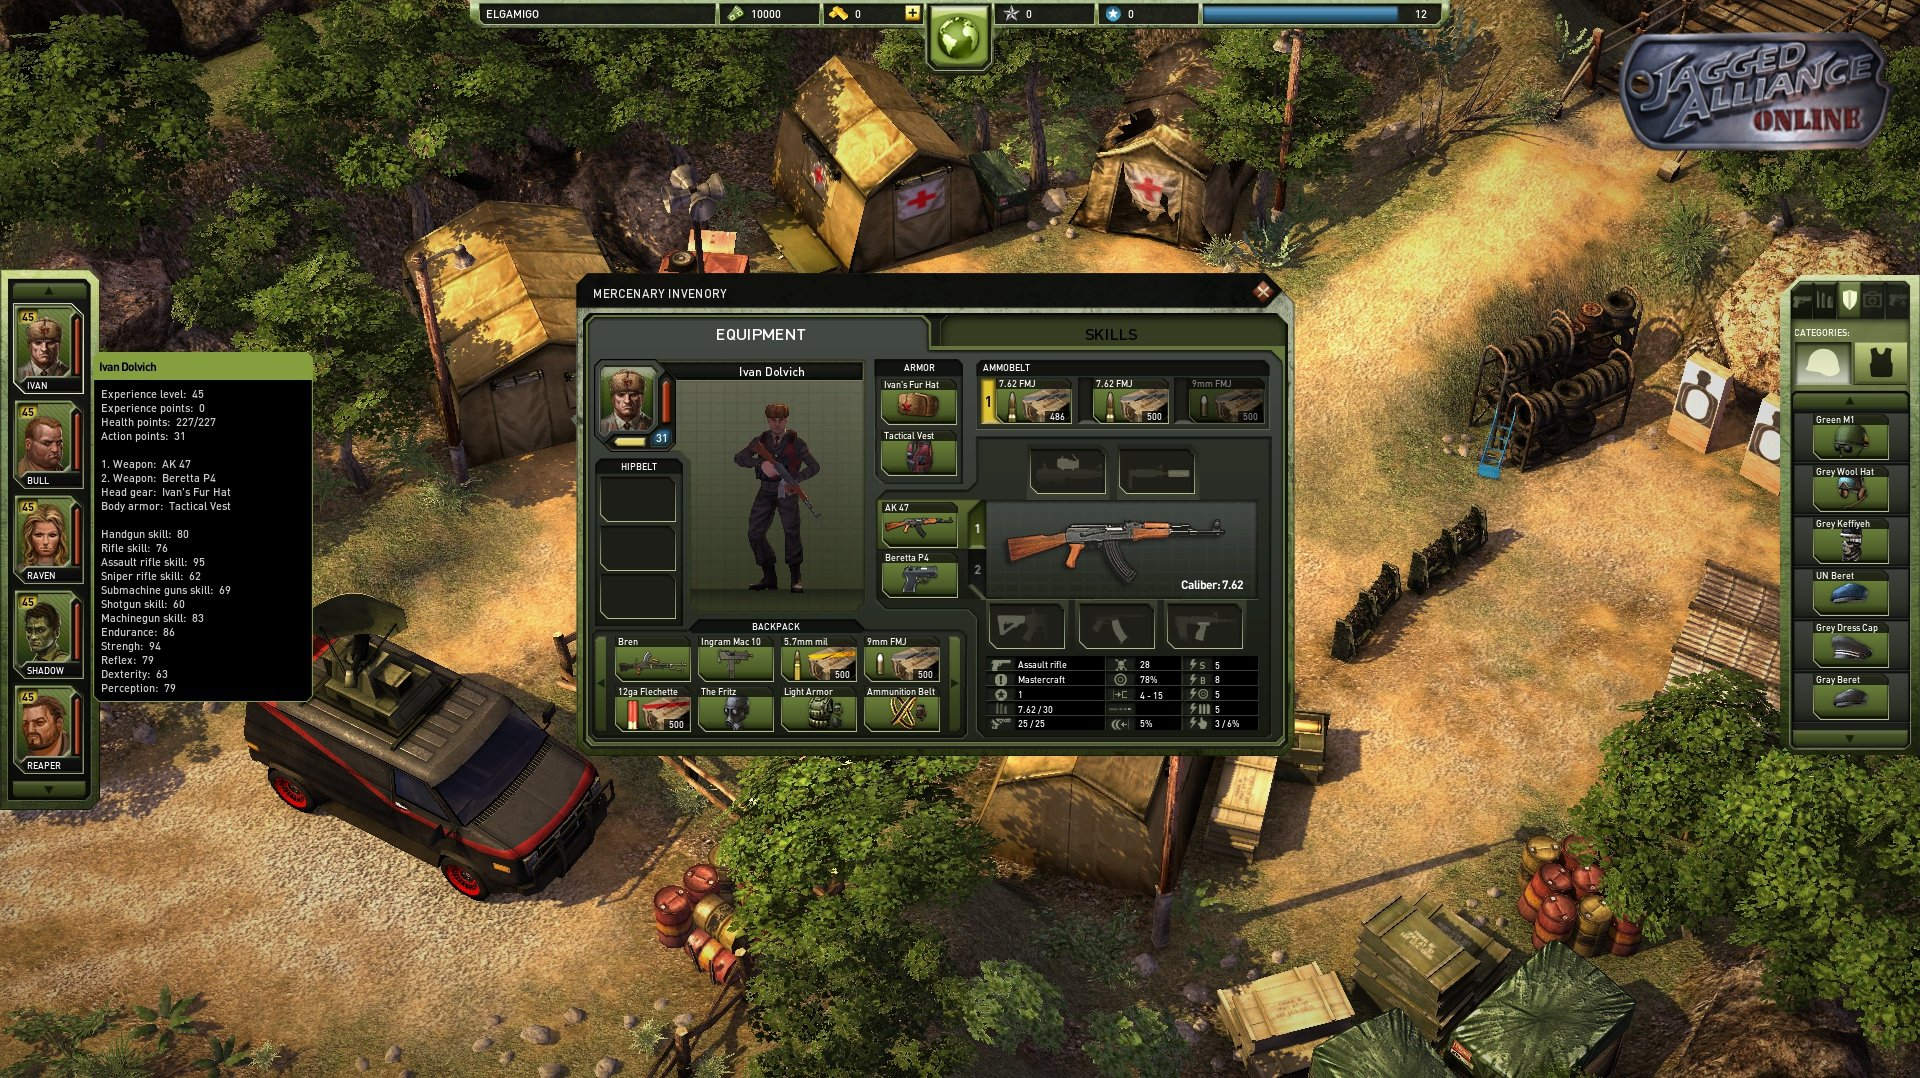 Jagged Alliance Online Enters Closed Beta Today #19743